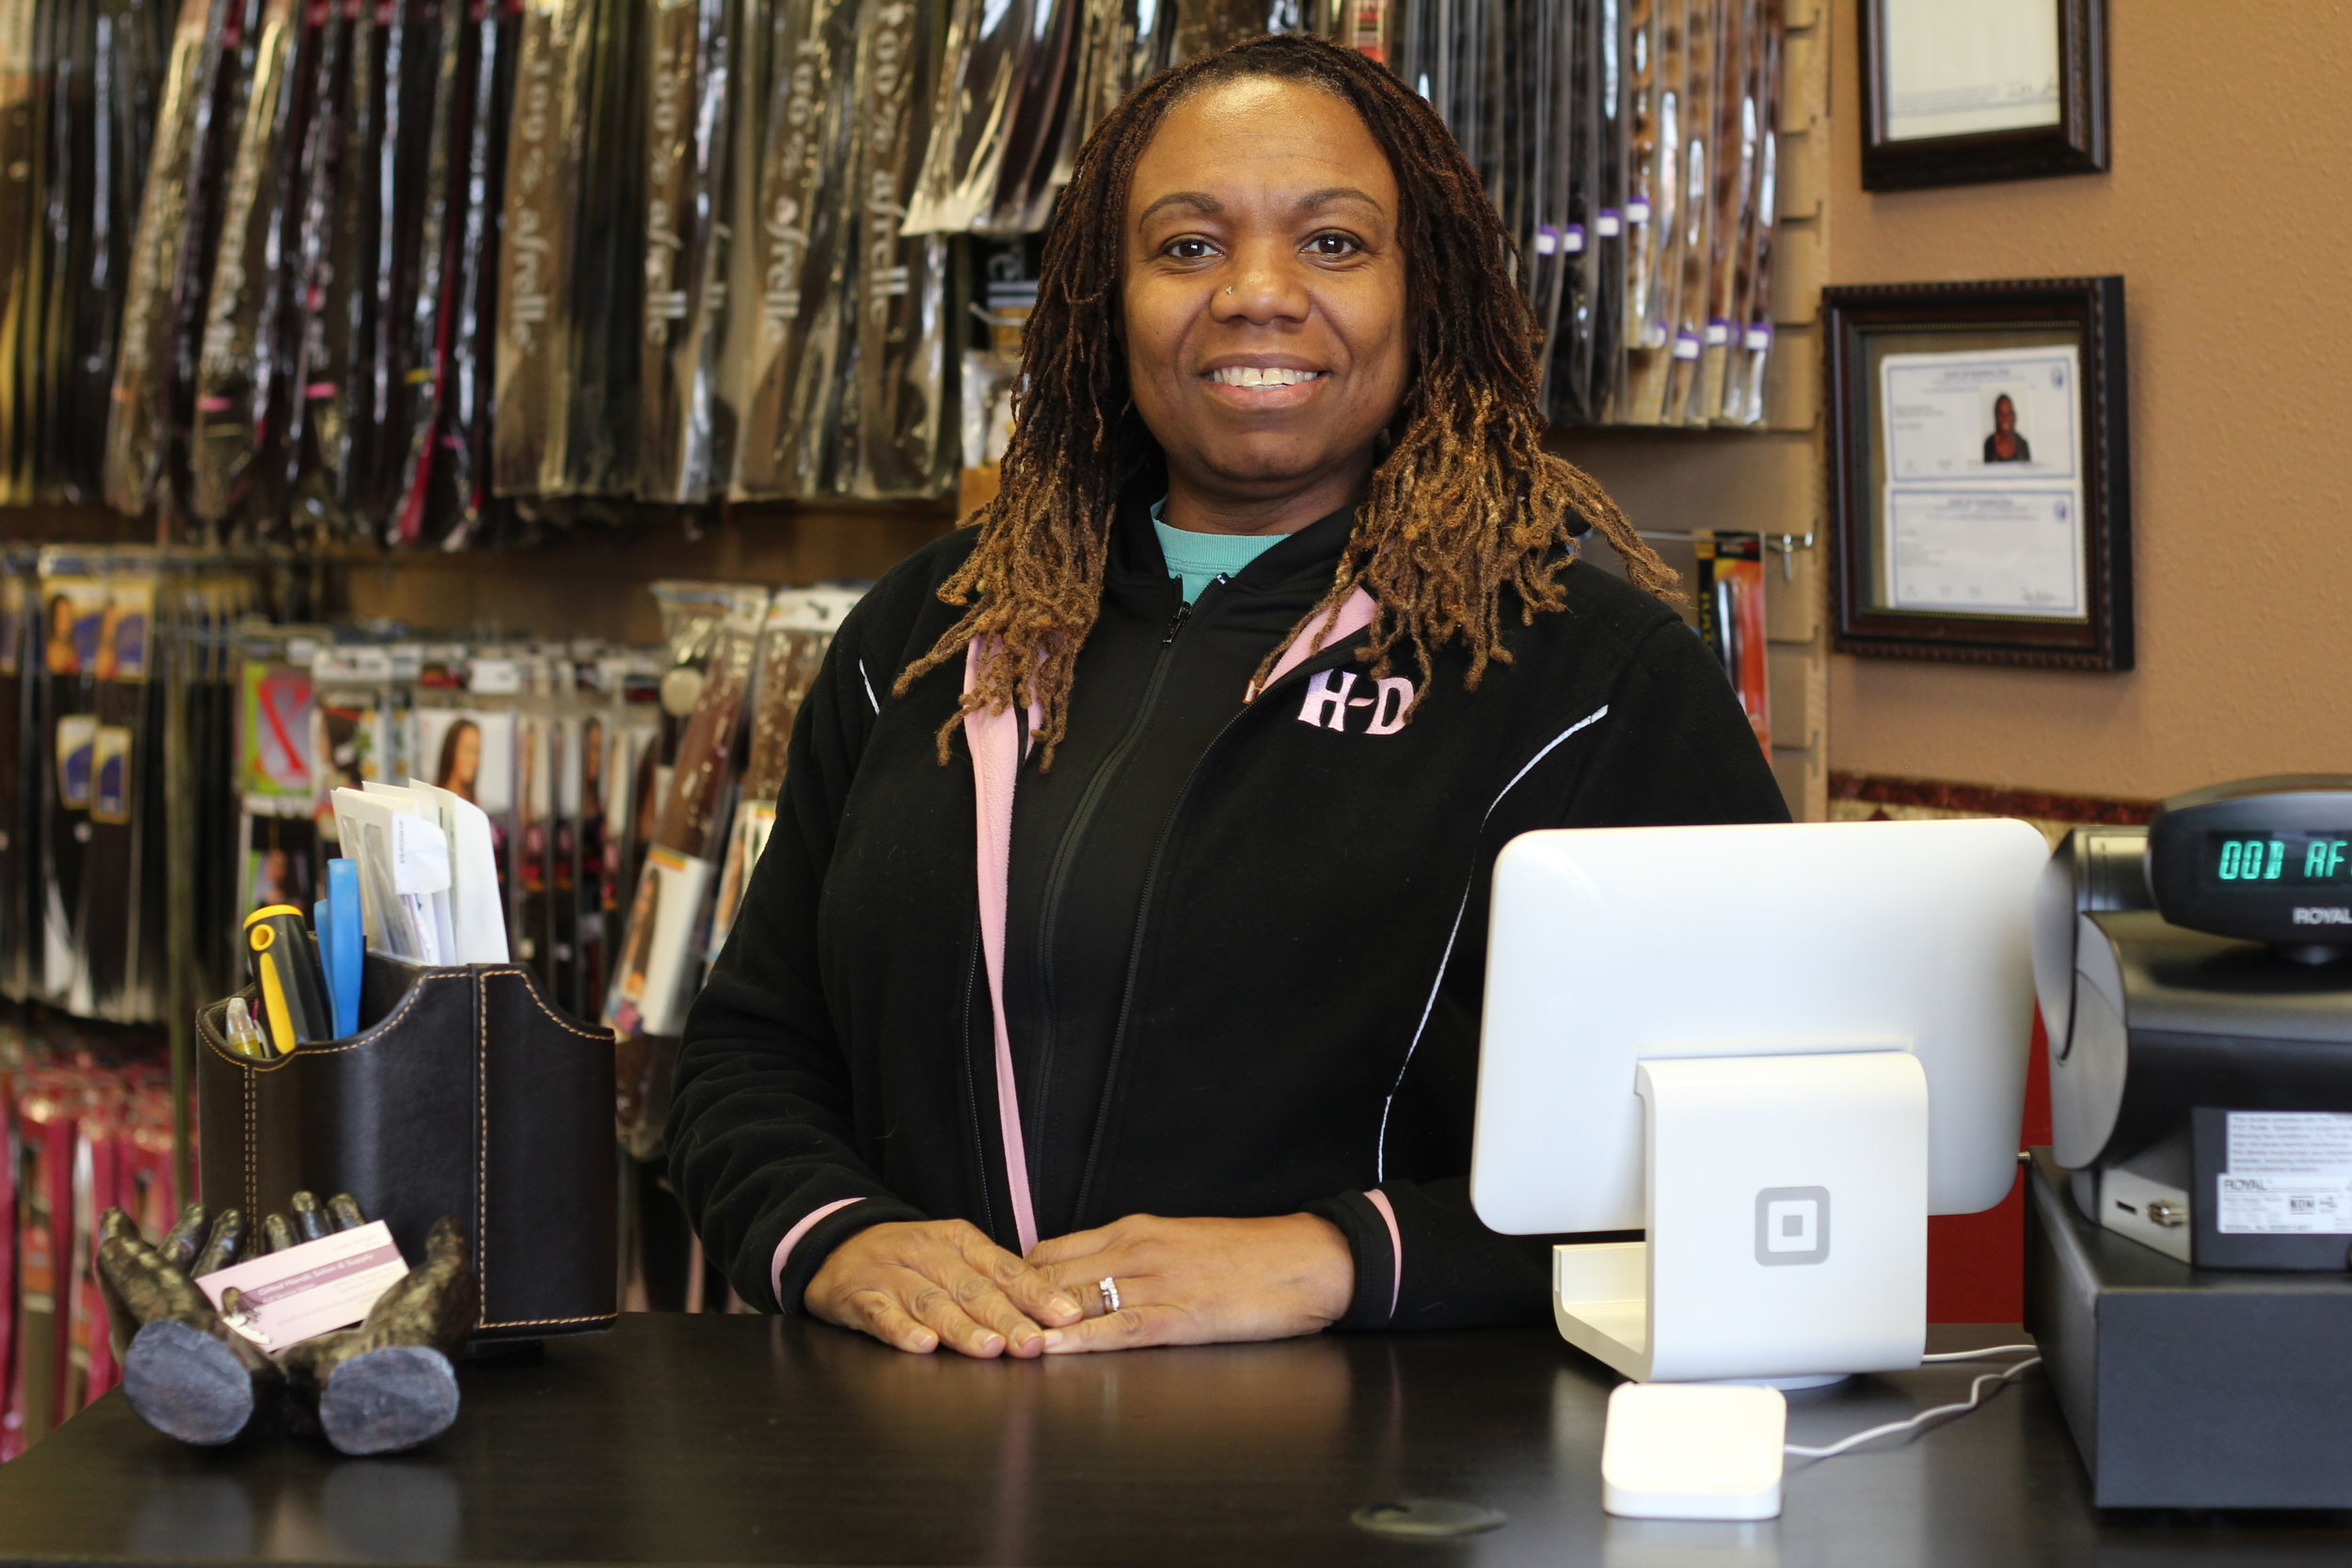 Please contact Linda Wright, owner of Gifted Hands Salon and Supply, for questions, appointments, and other services. -